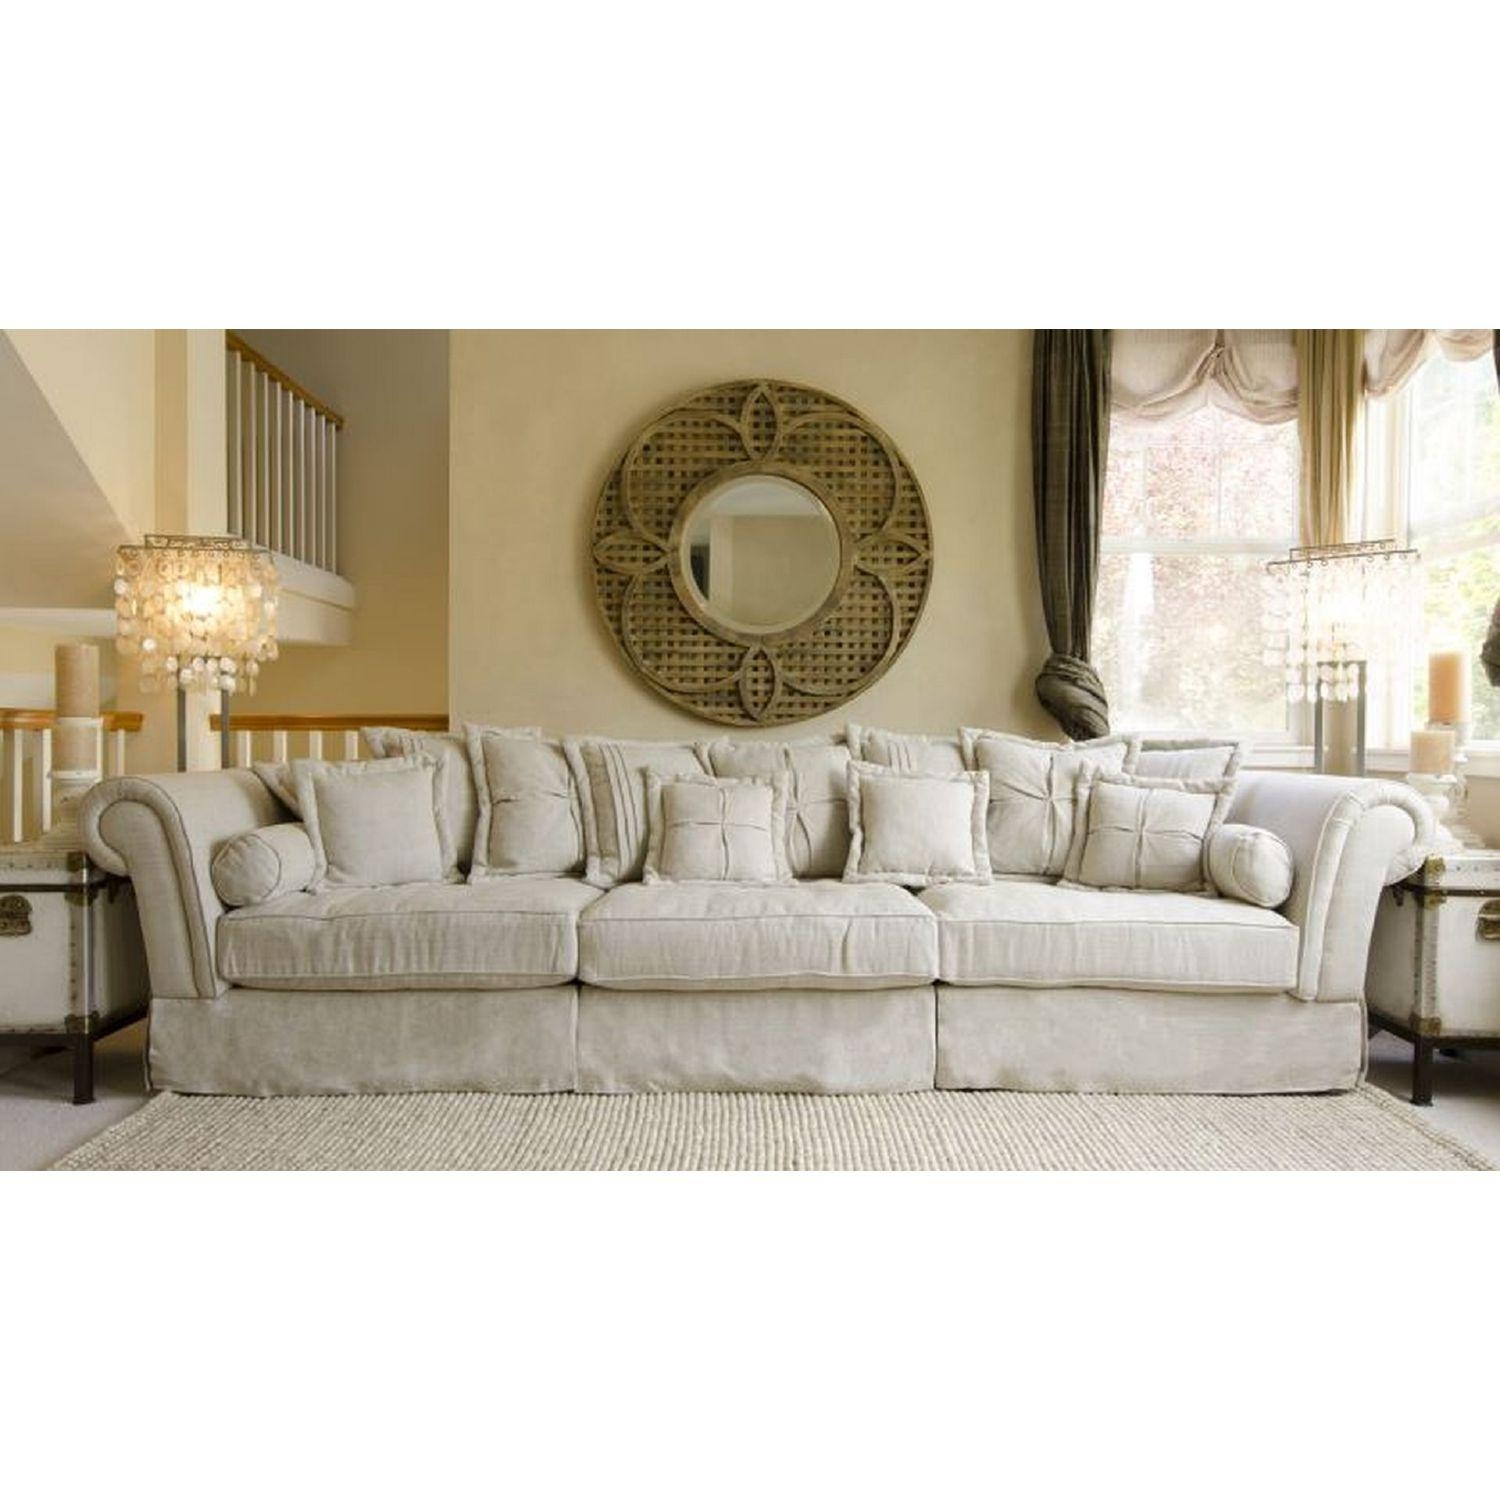 Furniture Home : Amusing Shabby Chic Sectional Sofa 16 For Your With Regard To Shabby Chic Sectional Sofas (Image 4 of 20)